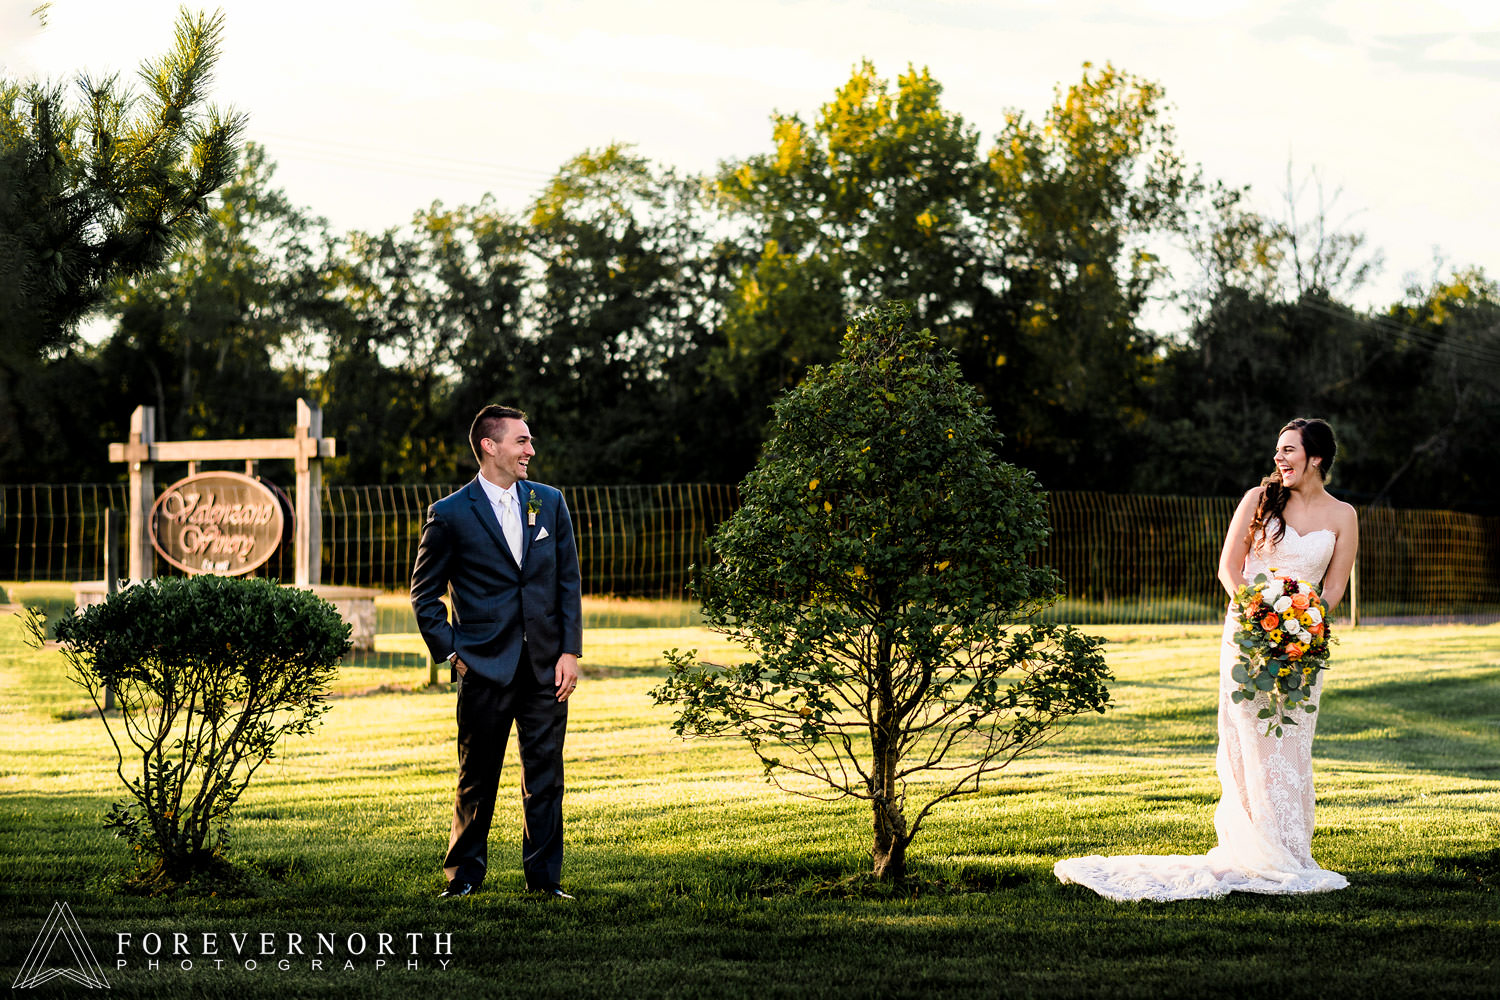 Mendyk-Valenzano-Family-Winery-NJ-Wedding-Photographer-54.JPG